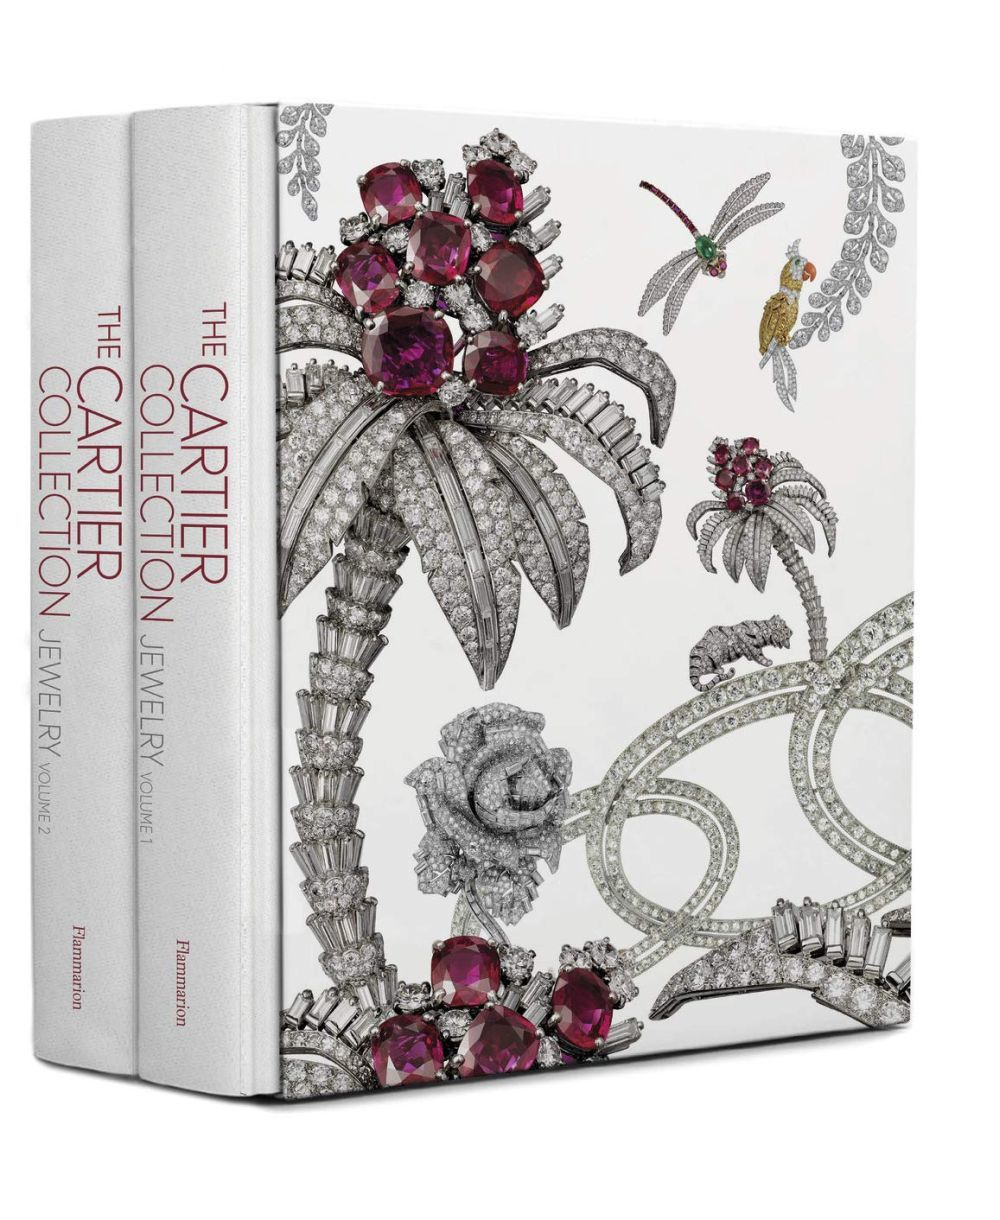 Libro The Cartier Collection Jewelry que se puede adquirir en AMAZON.